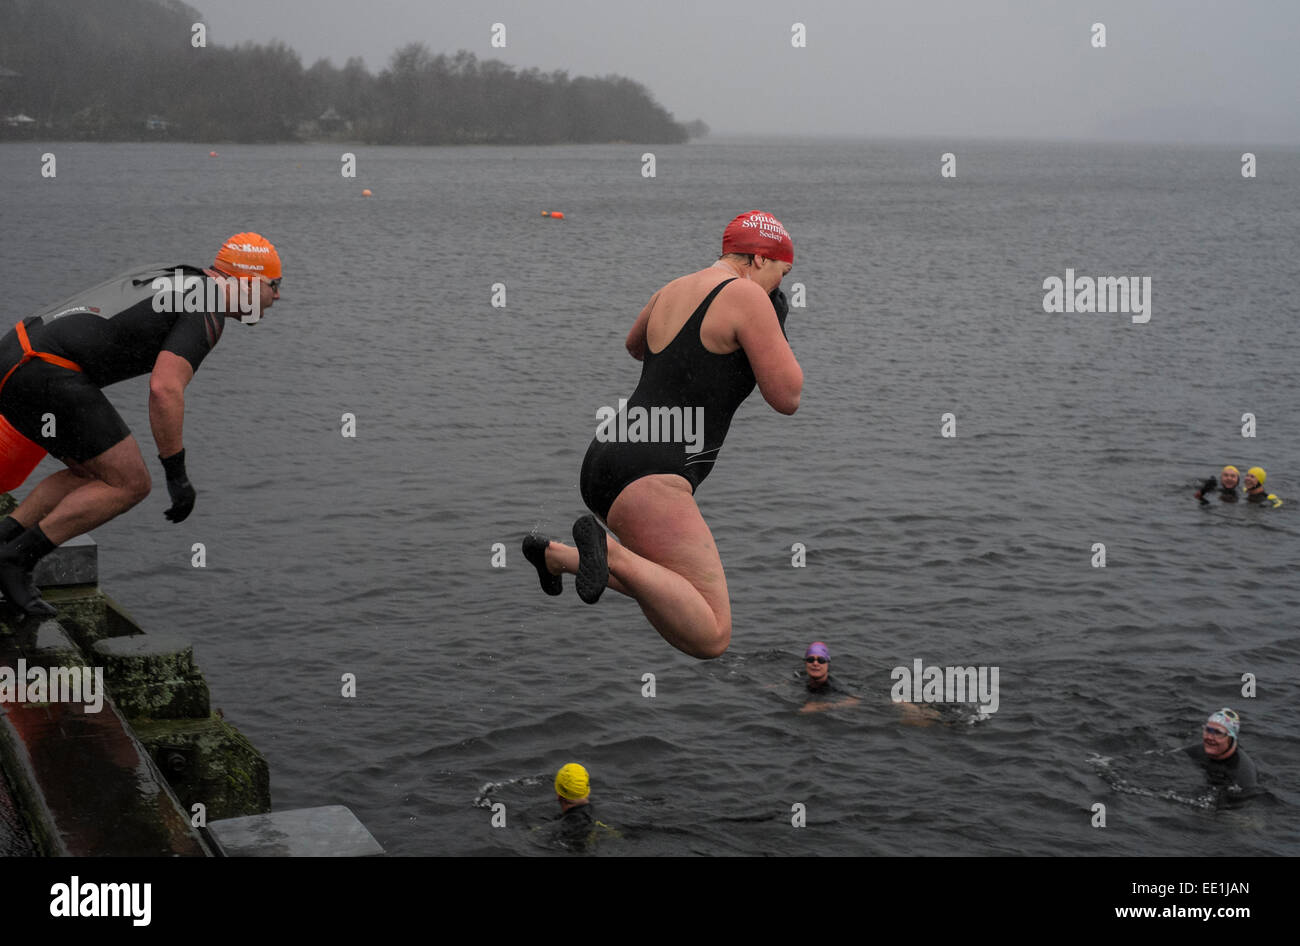 New Years Day swimmers take to the water from the pier at Luss in to the freezing waters of Loch Lomond, Scotland. - Stock Image